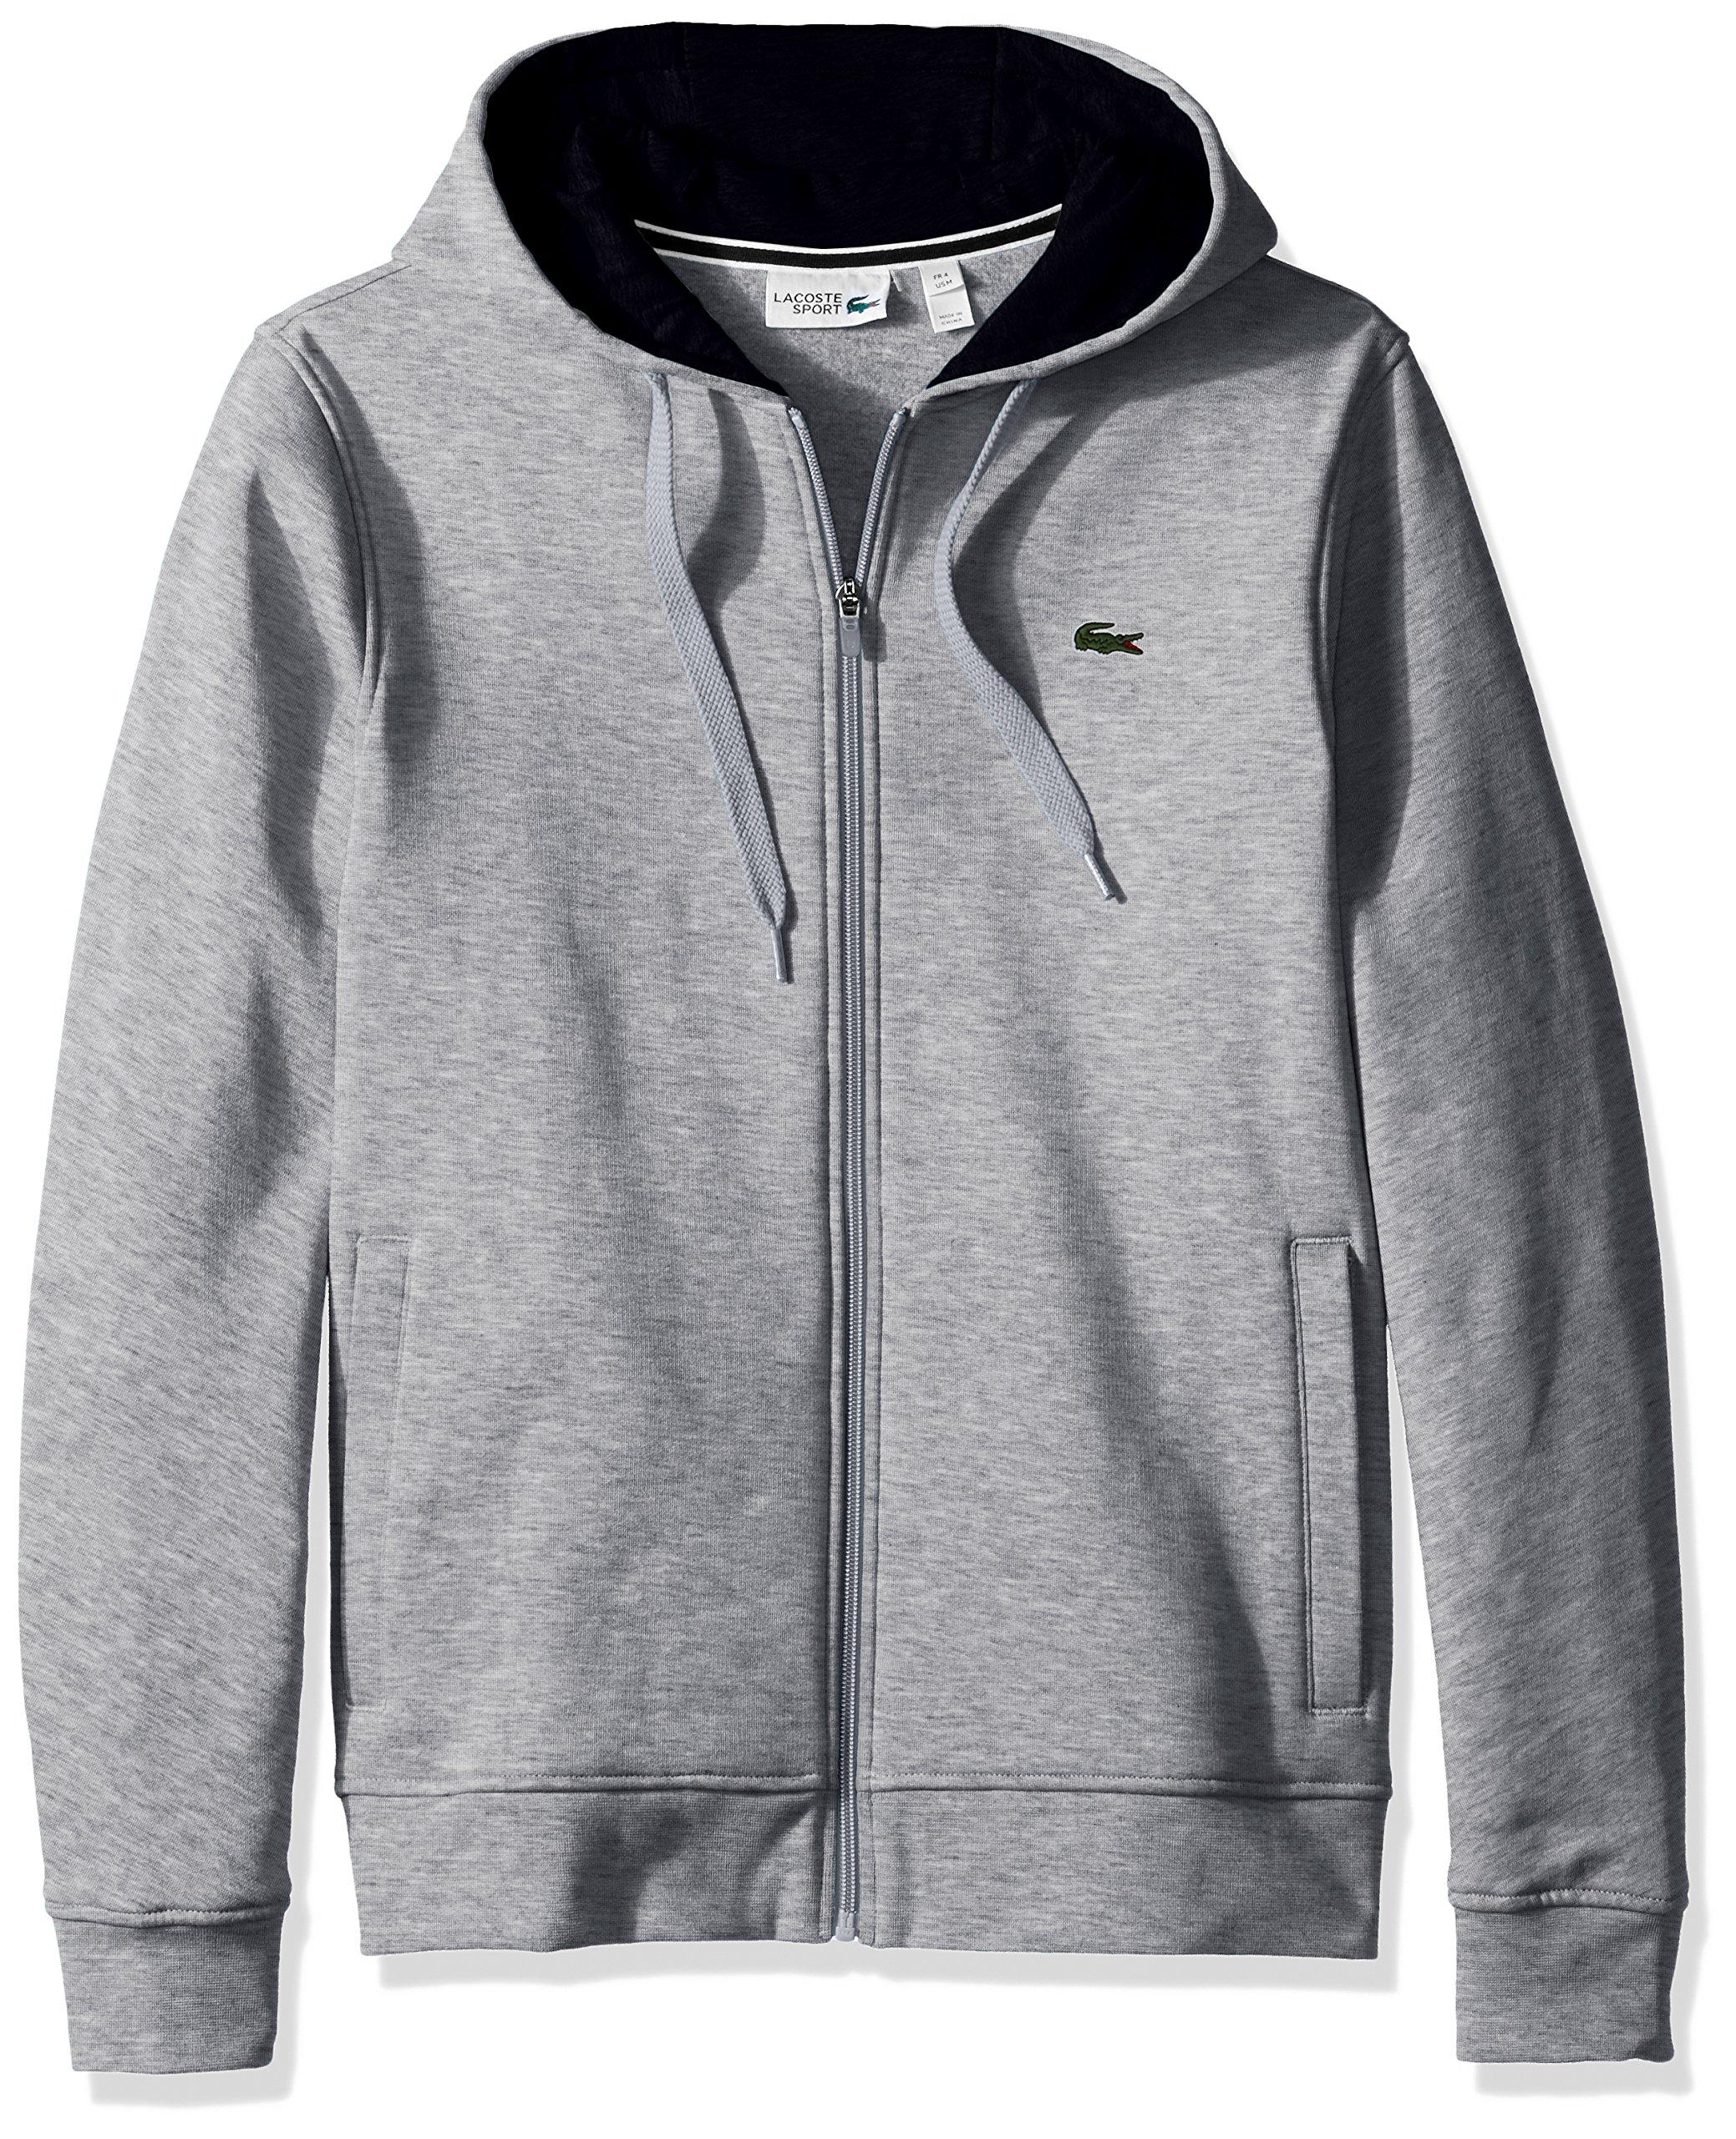 Lacoste Men's Full Zip Hoodie Fleece Sweatshirt, Silver Chine/Navy Blue, Small